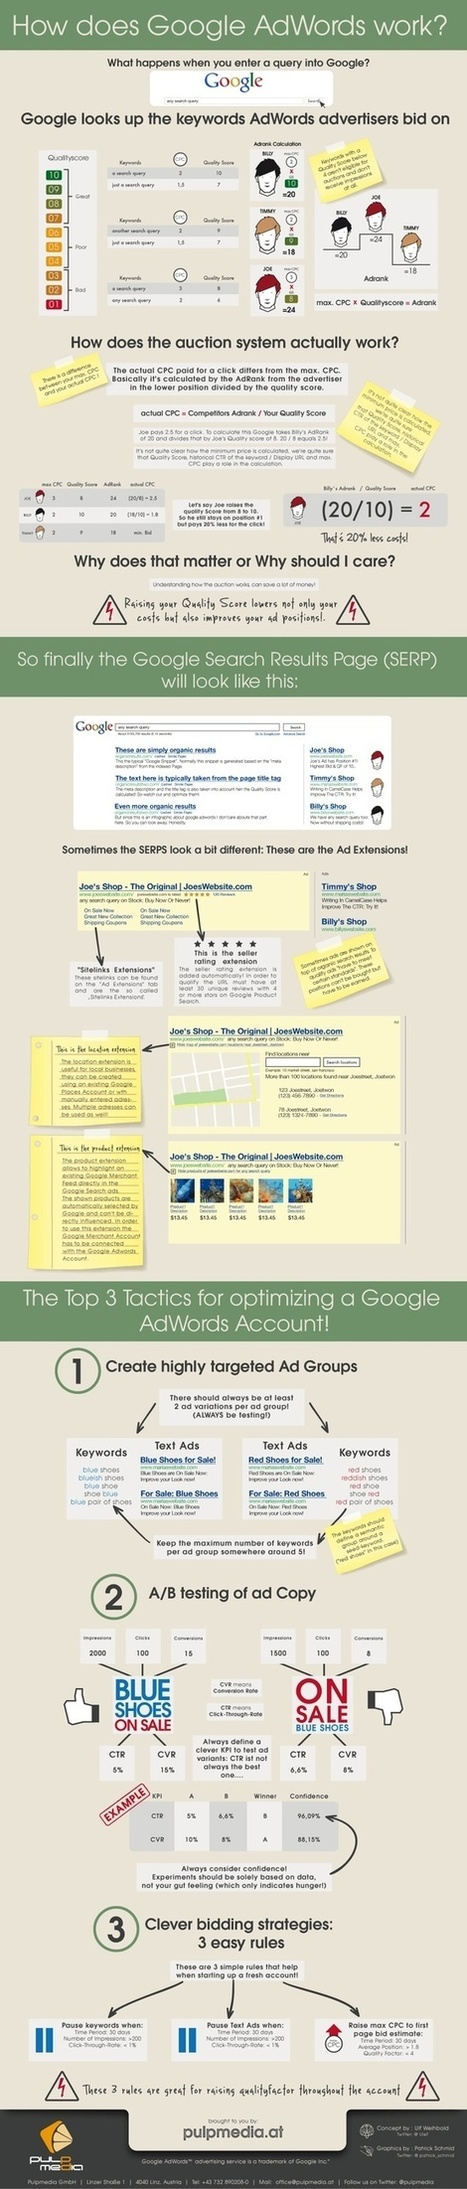 INFOGRAPHICS | Catfish WebWorks - Internet Marketing | Scoop.it